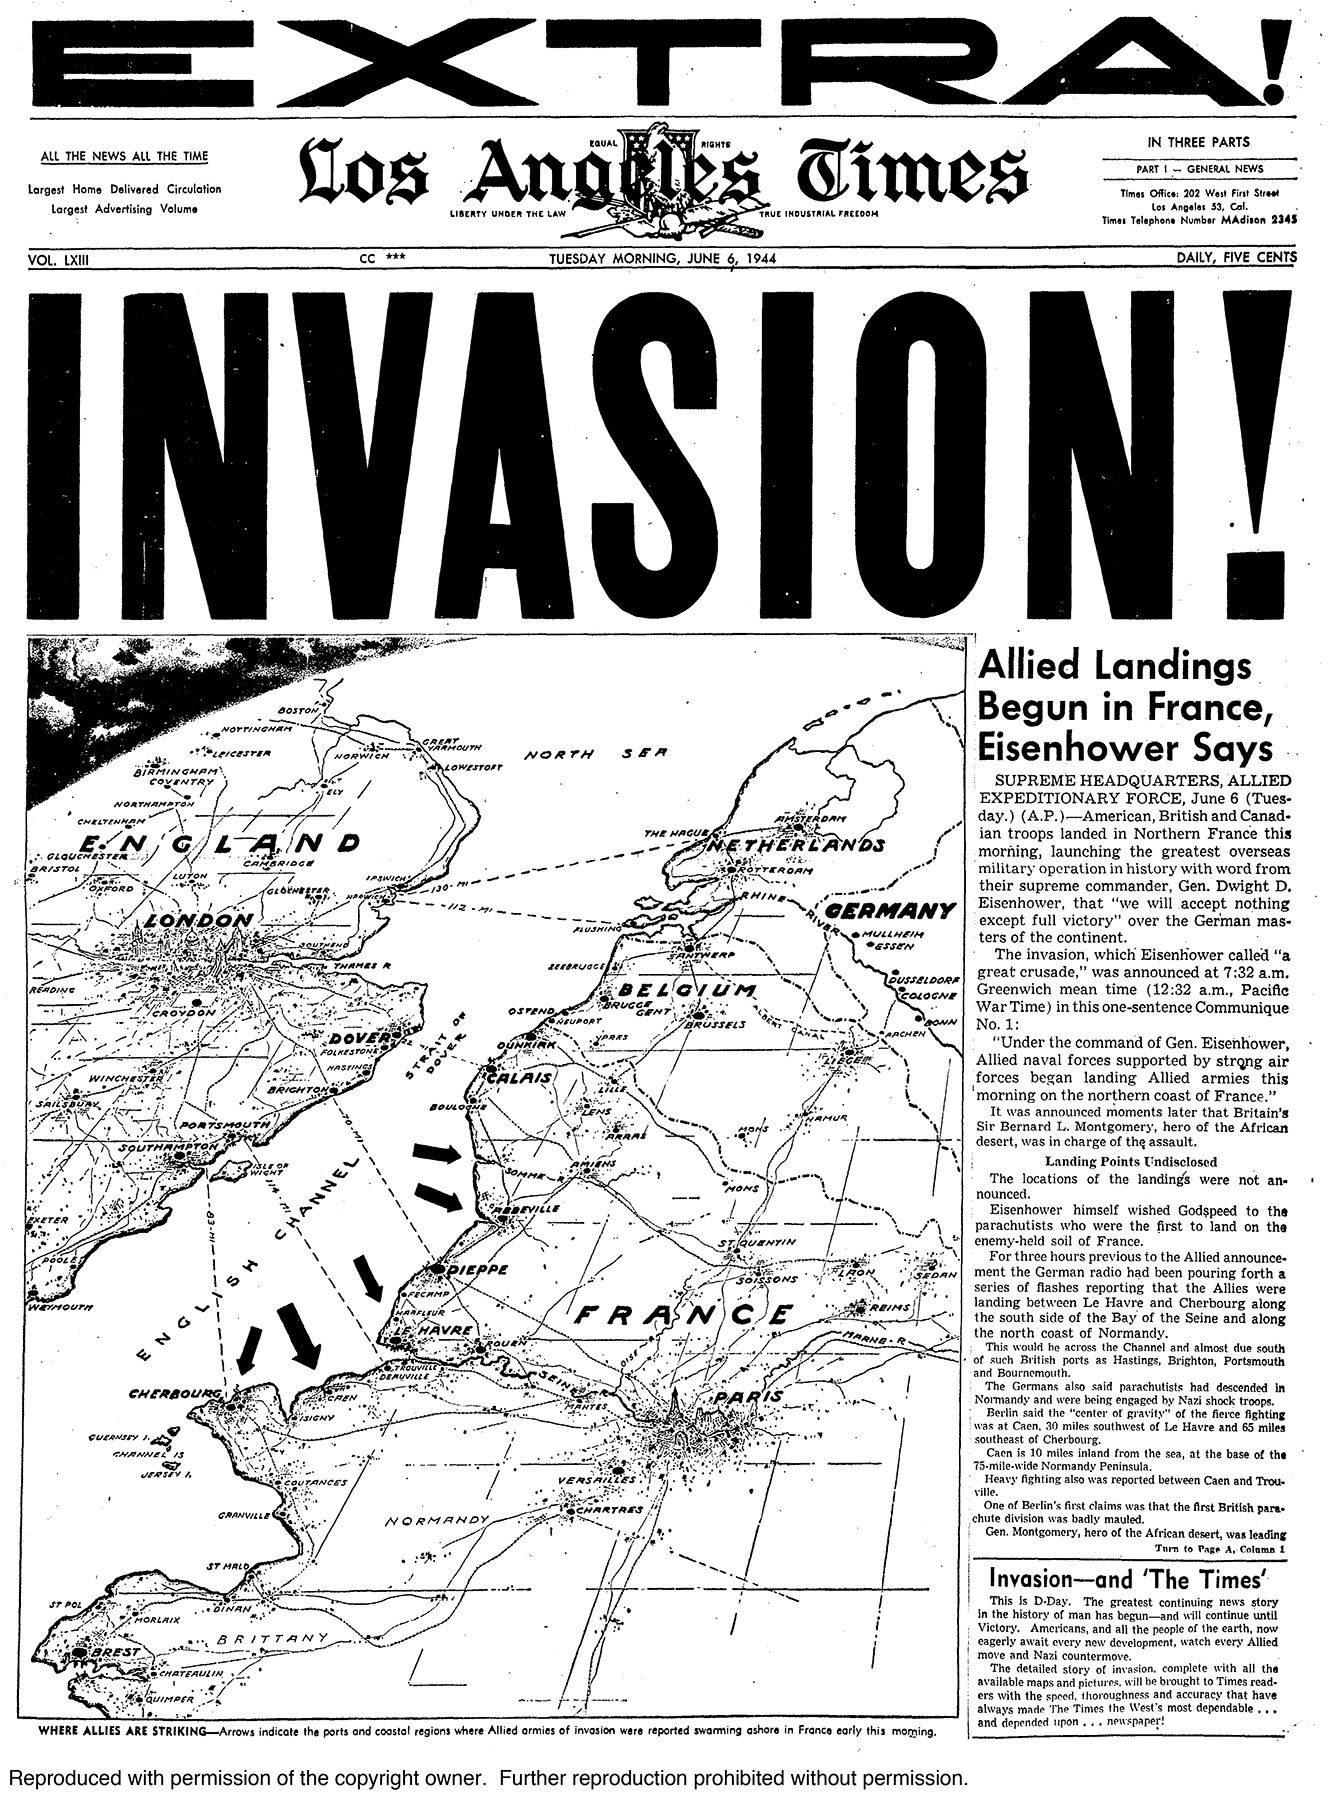 June 6, 1944 special edition of the Los Angeles Times announcing the invsion of France.